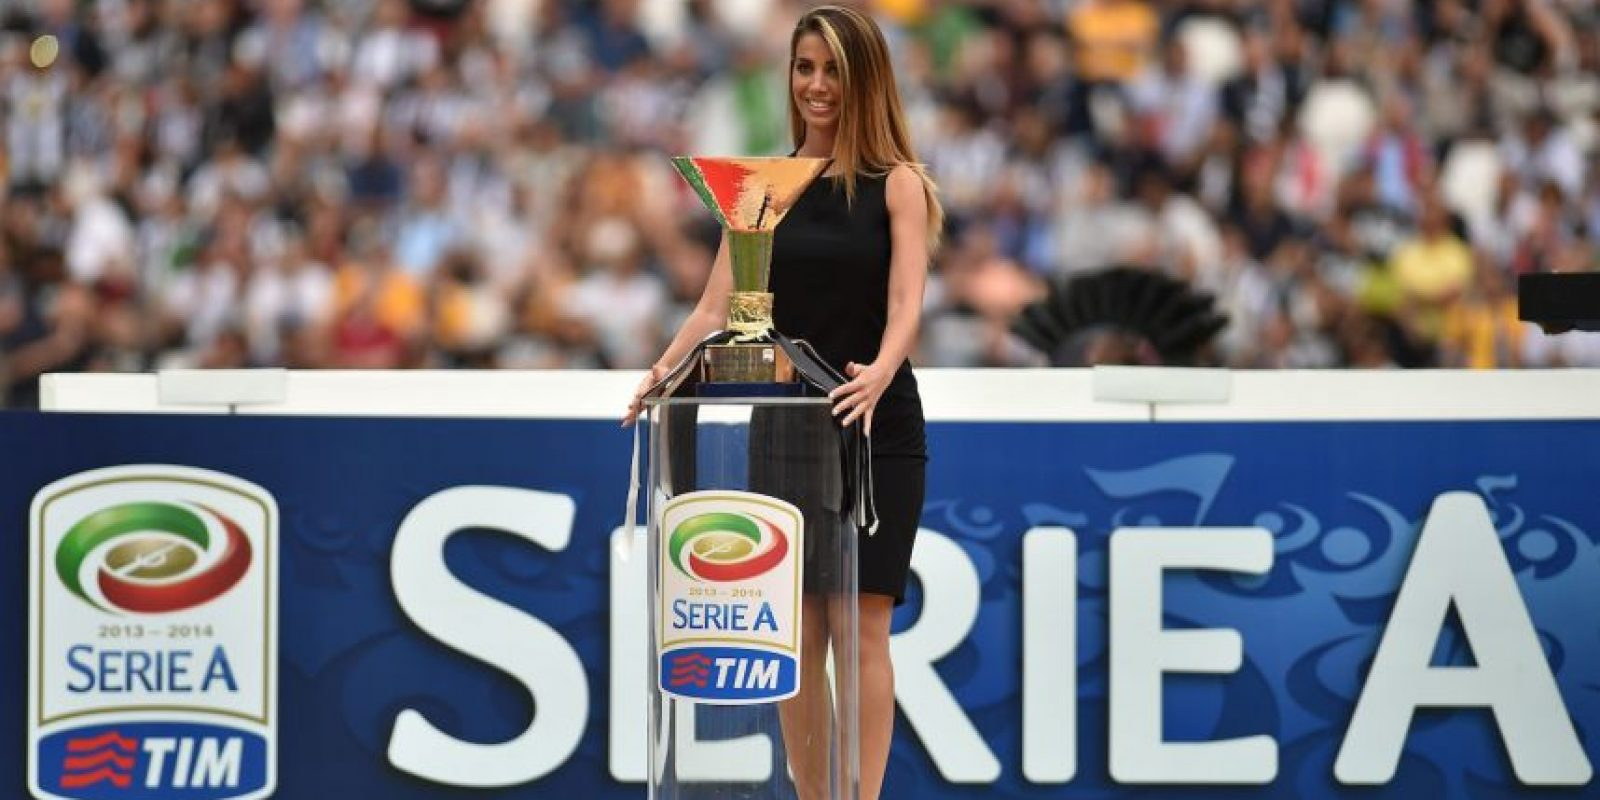 2. SERIE A (Italia): 26.3 años. Foto: Getty Images